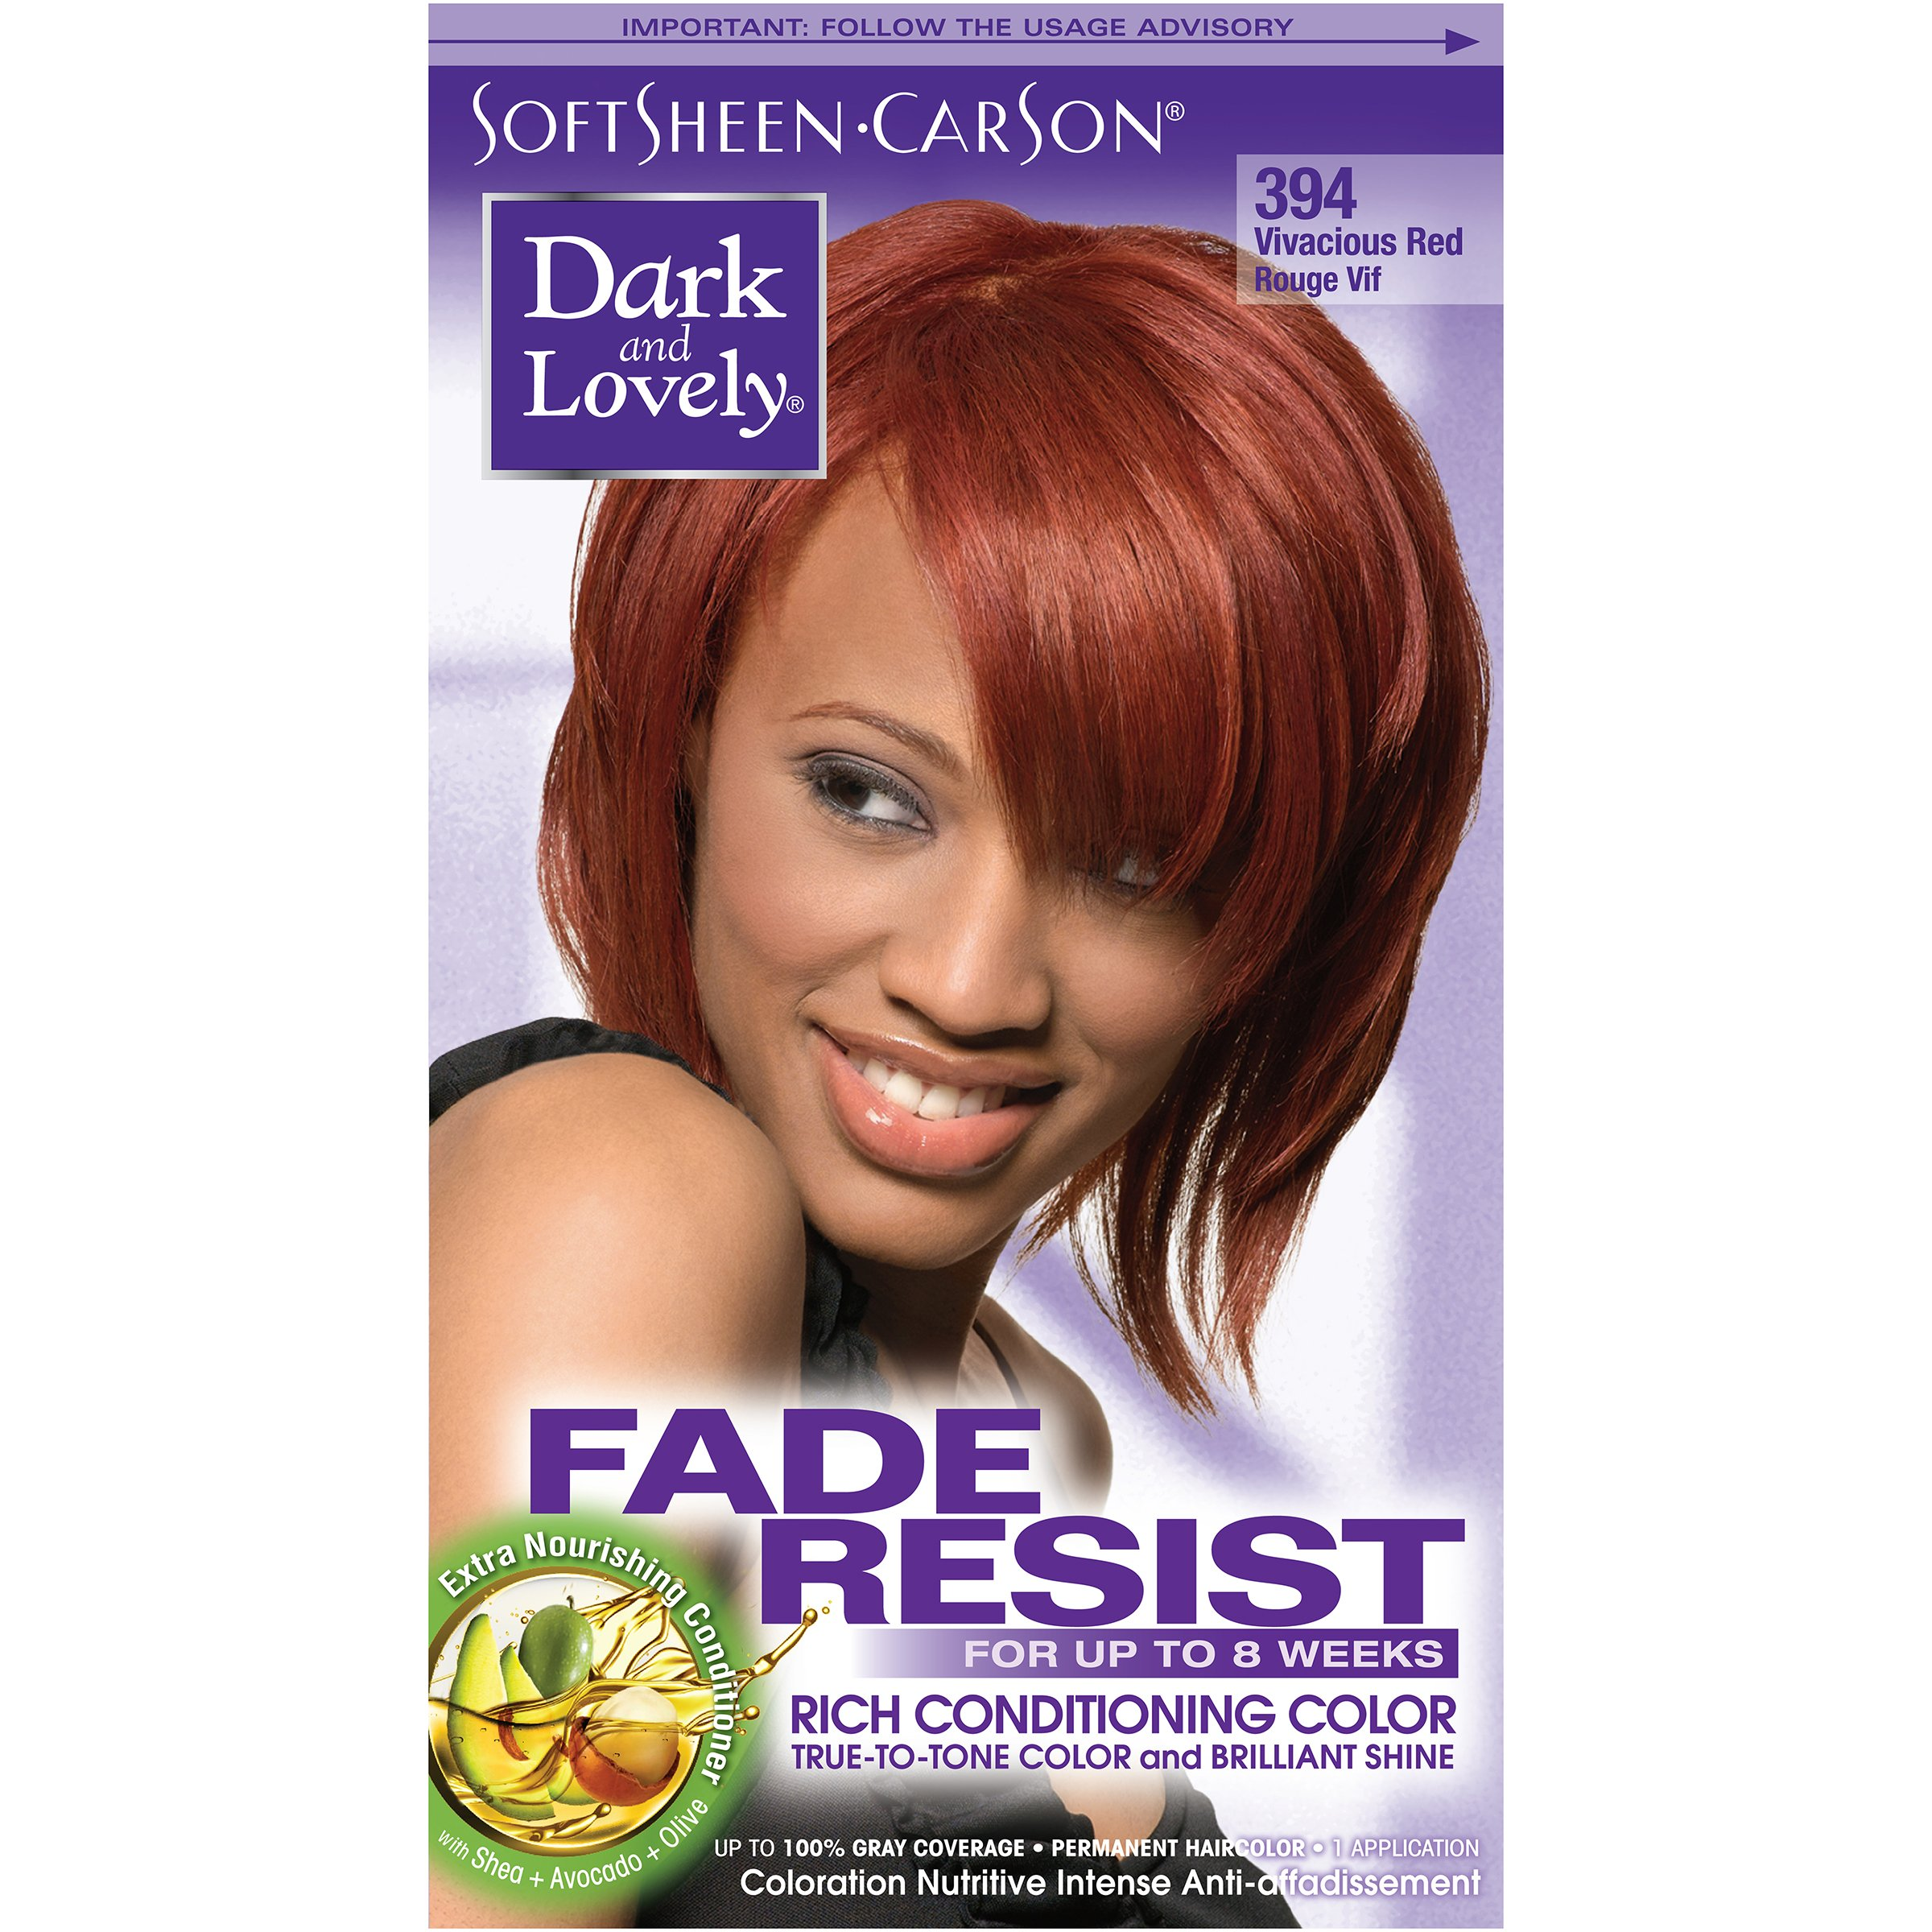 com softsheen carson dark and lovely fade resist rich conditioning color berry burgundy